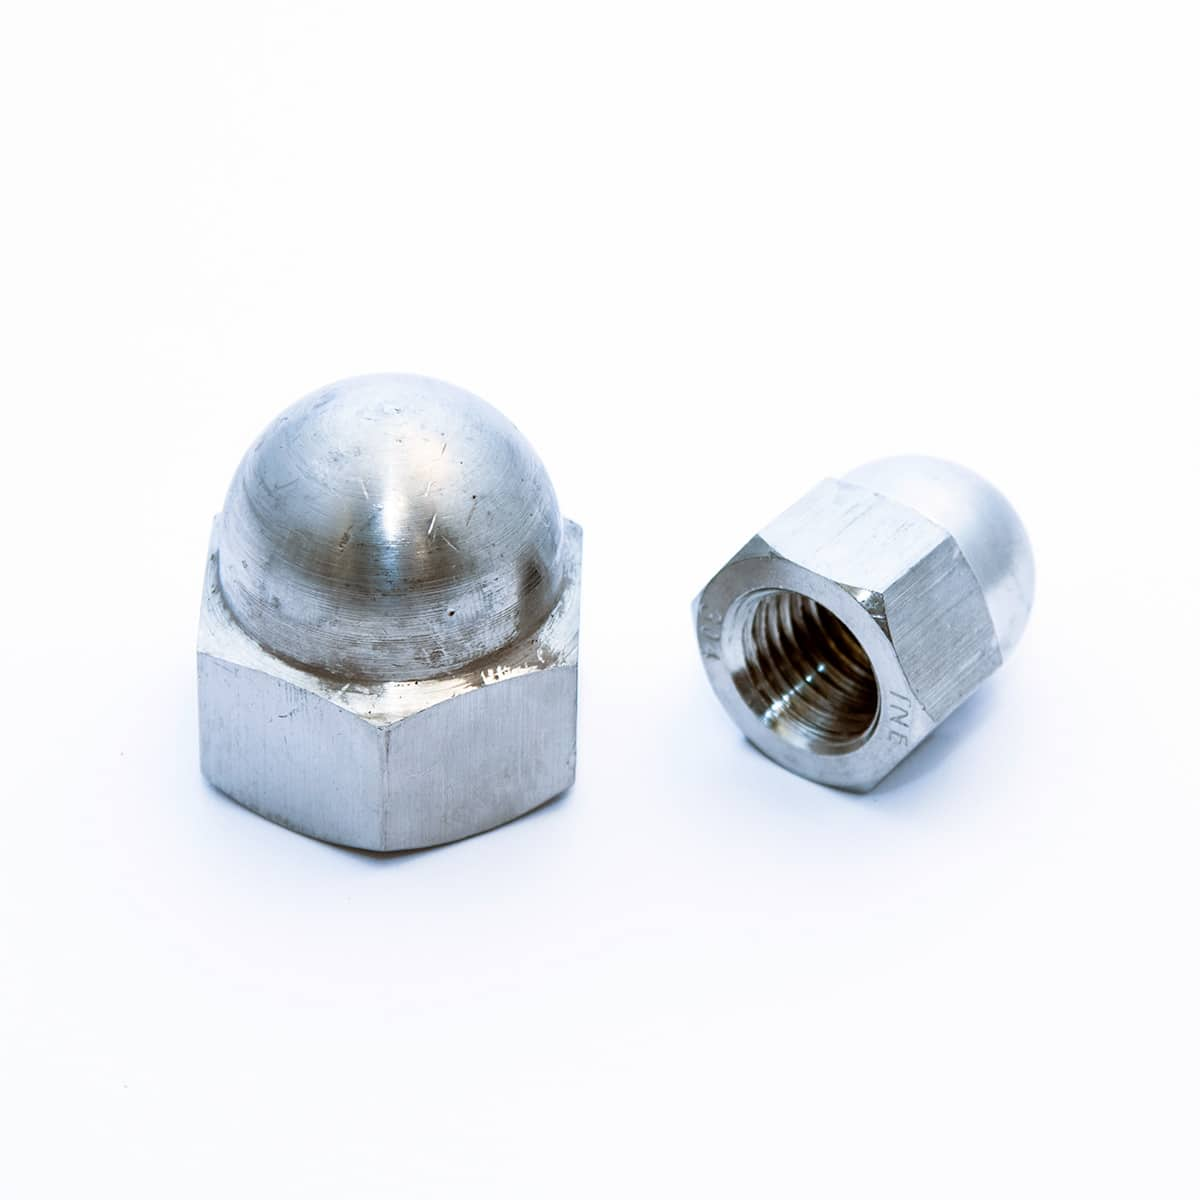 Hexagonal domed cap nuts, high type